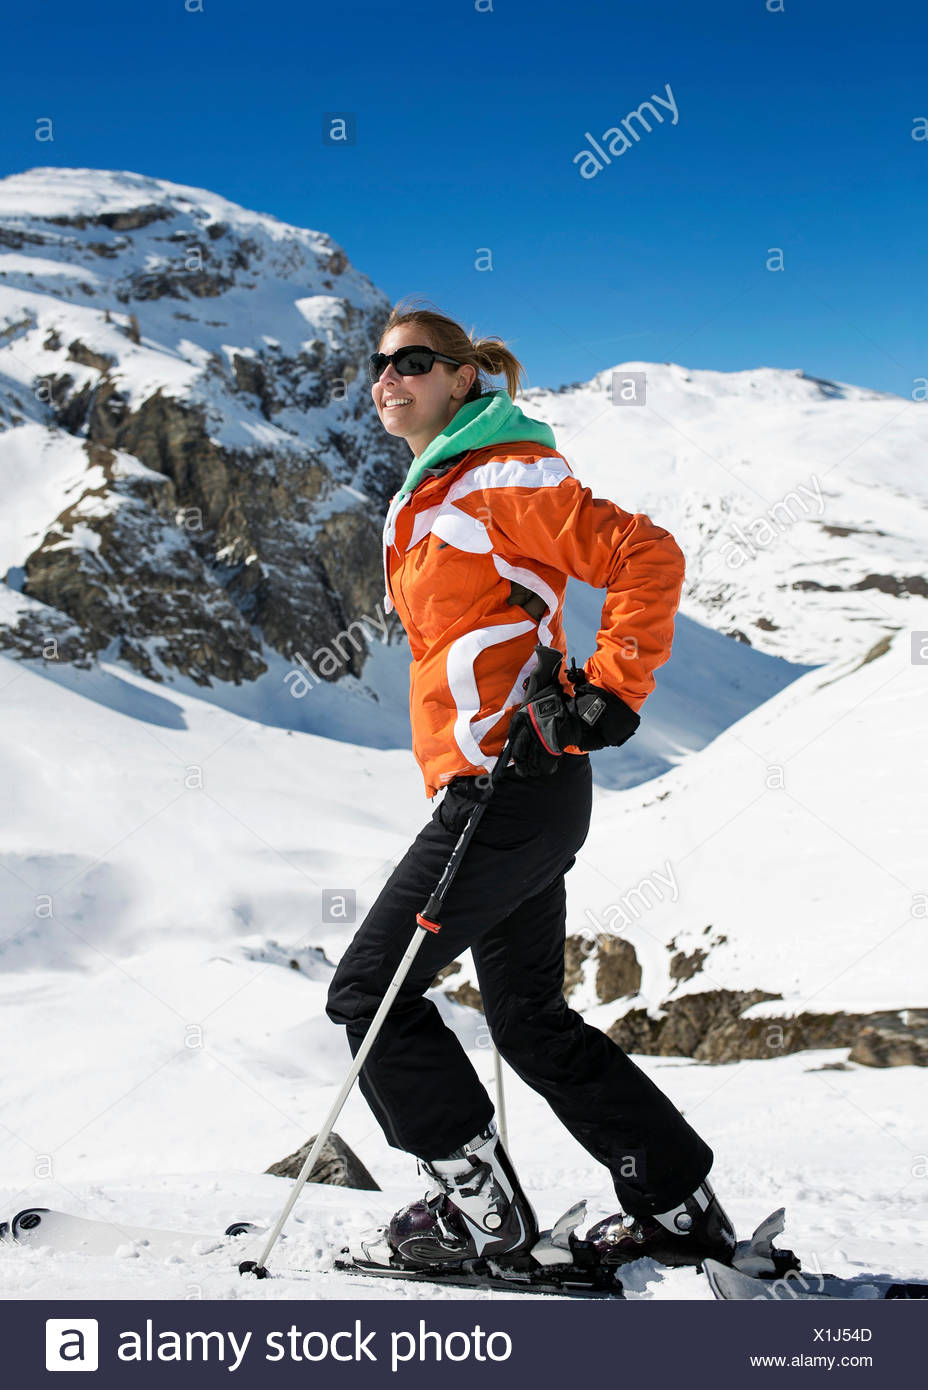 Famale sking doing snowsports on a snow mountain in Val D'Isere with an orange jacket on a sunny day Stock Photo